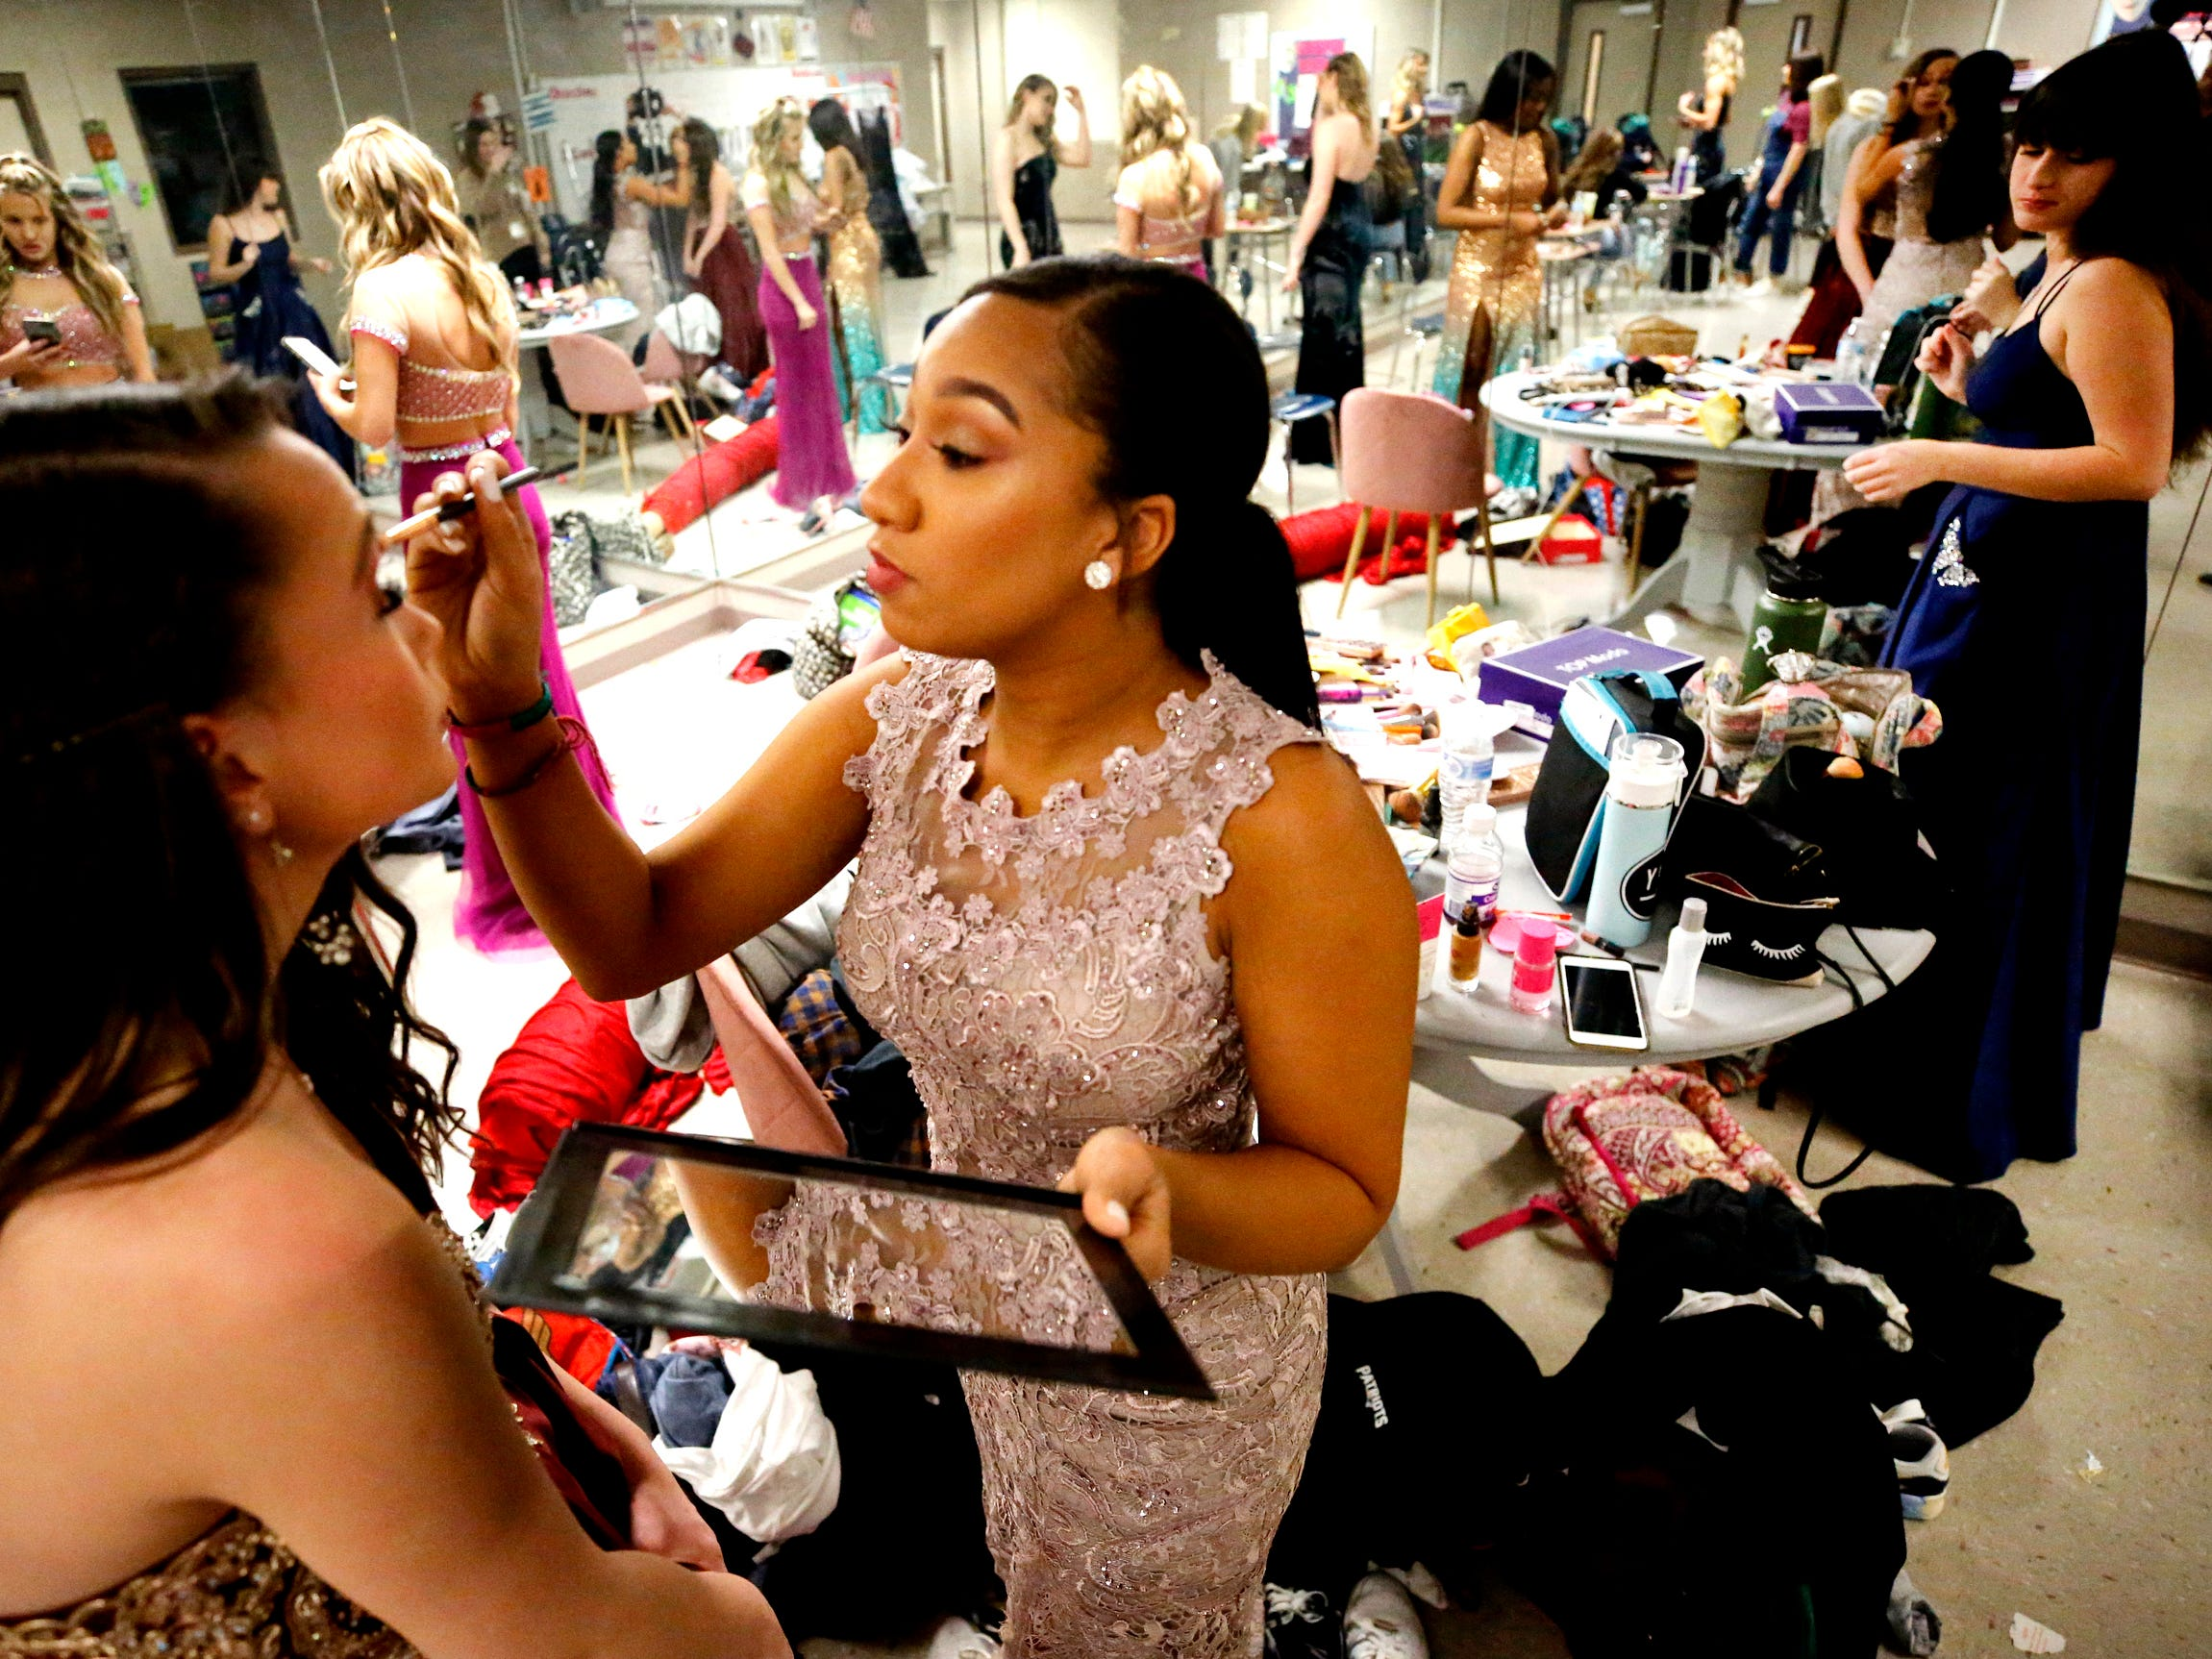 Aleah Carter, right, puts makeup on Jinni McCullough as the two get ready for the Siegel Prom Fashion Show on Feb. 14, 2019.